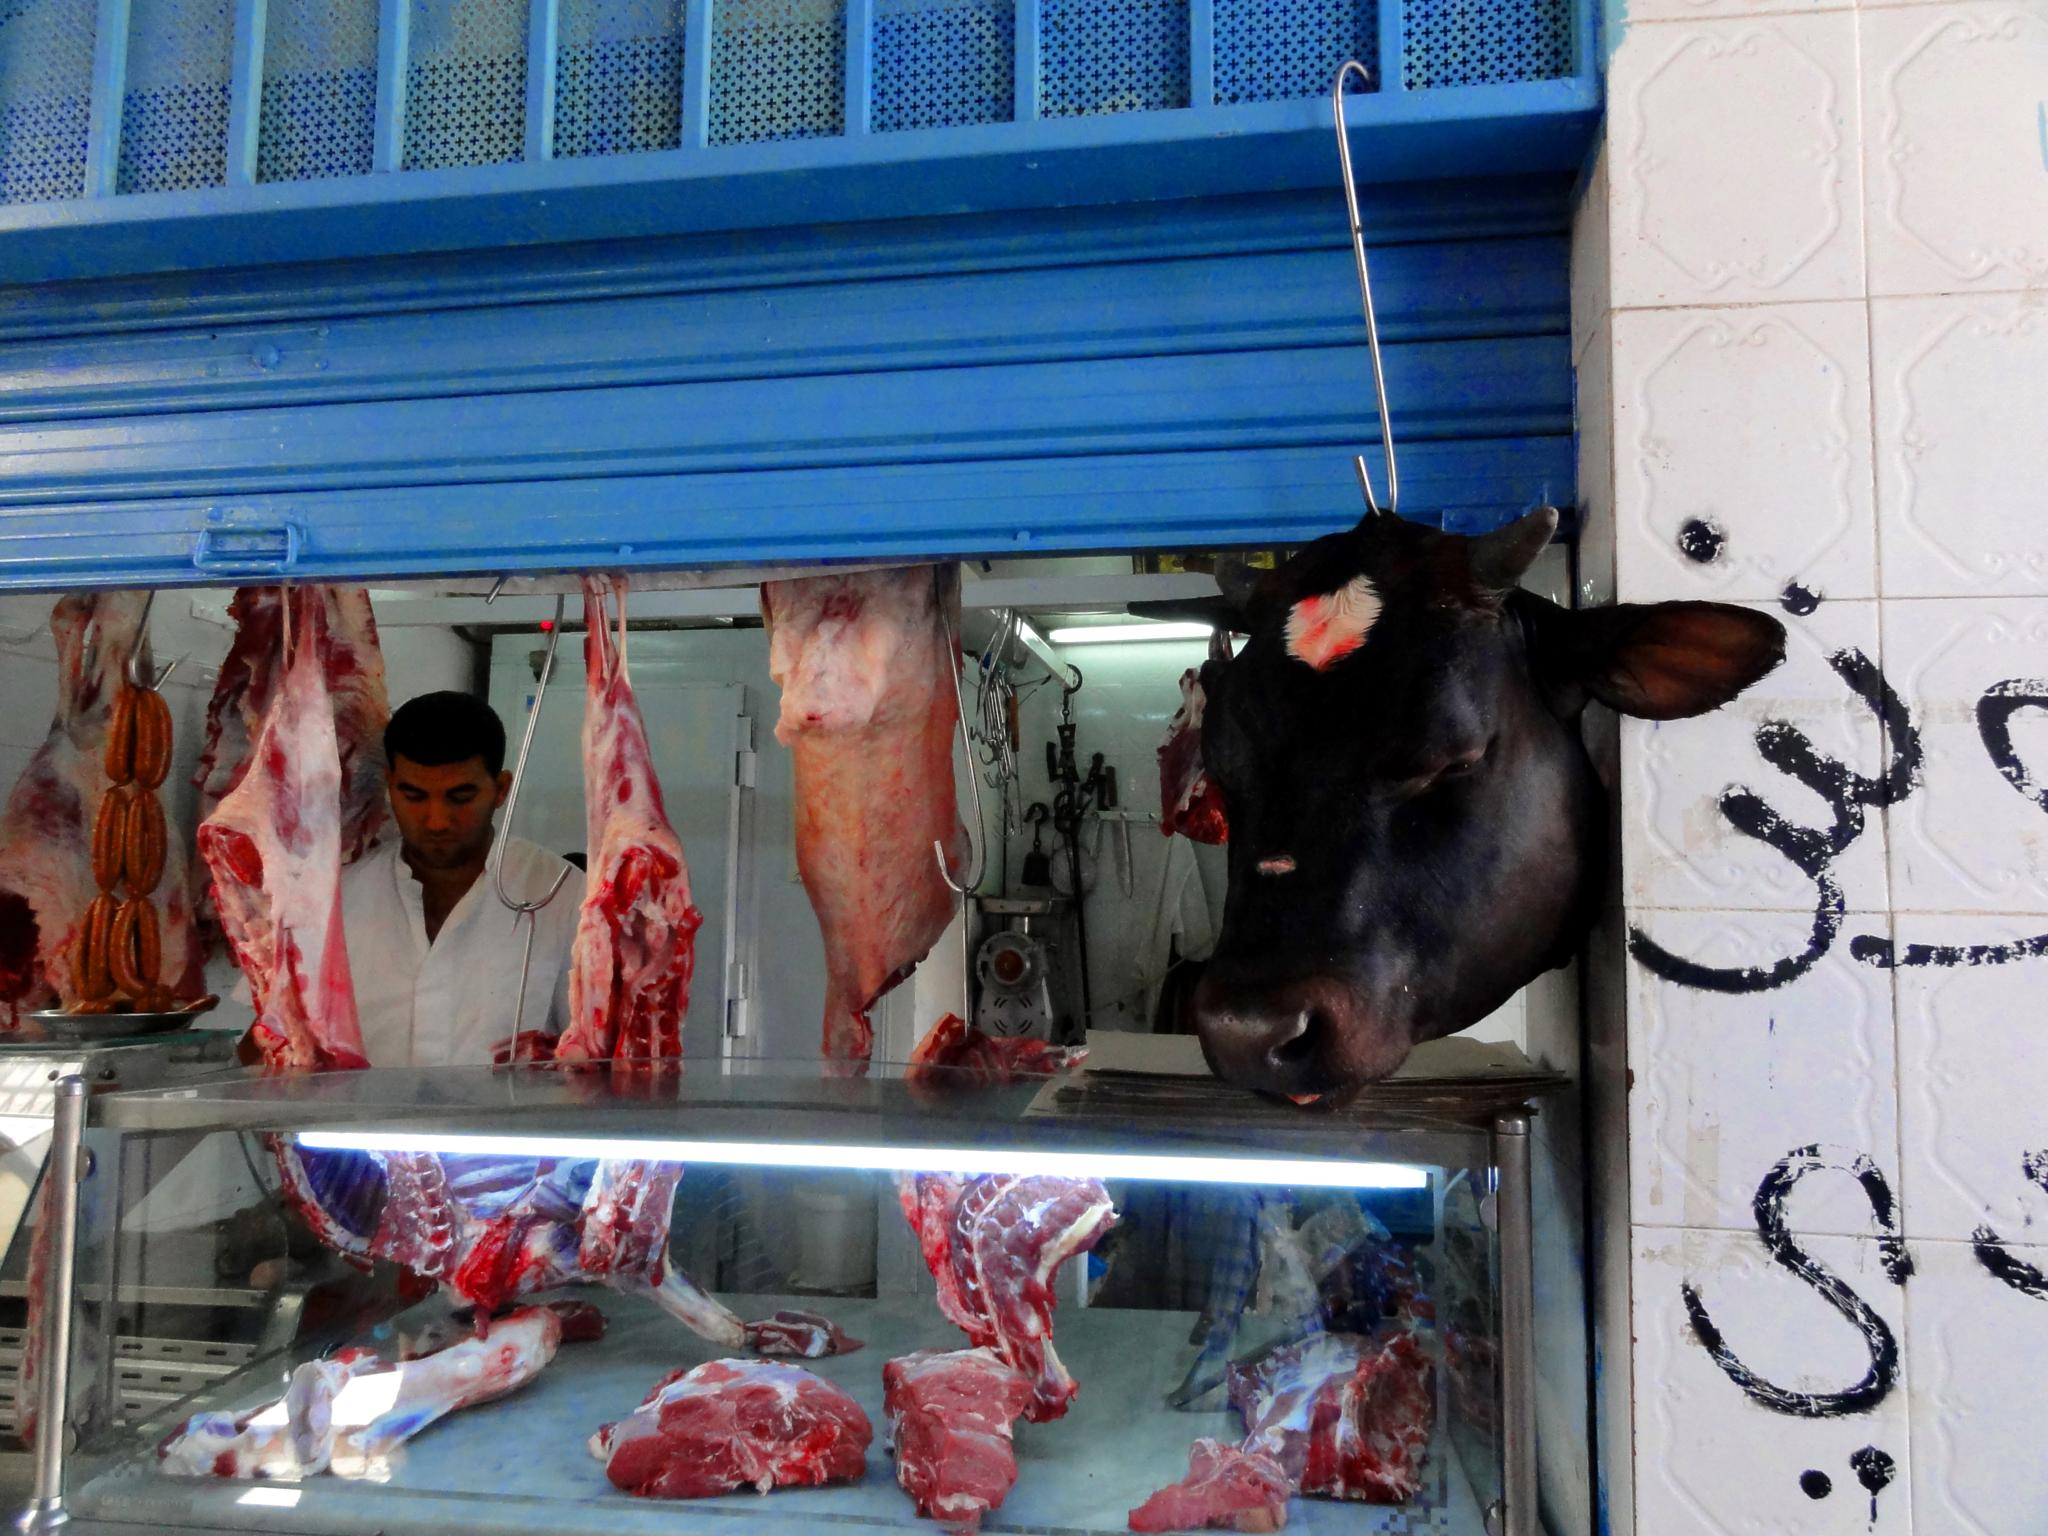 Butcher in Tunisia by WhiteArtPhotography